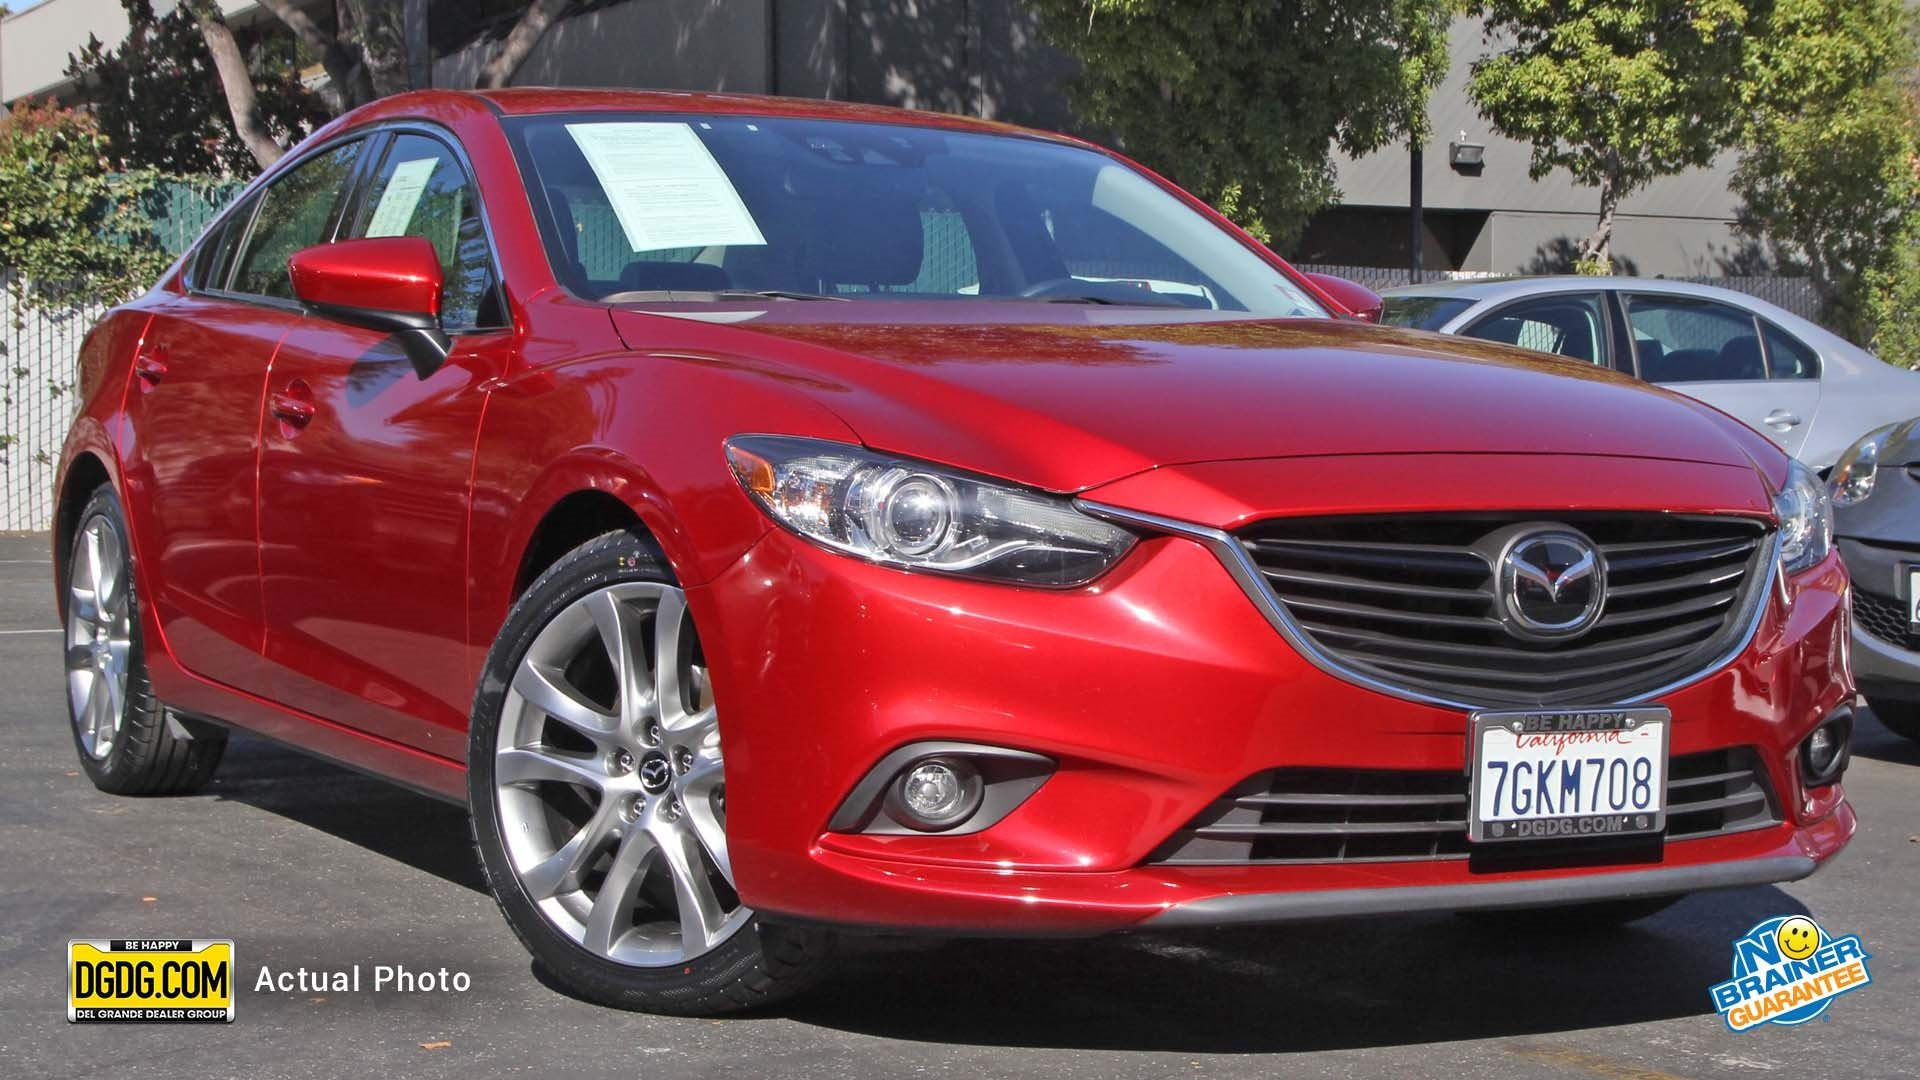 Certified Pre Owned 2015 Mazda Mazda6 i Grand Touring 4dr Car in San